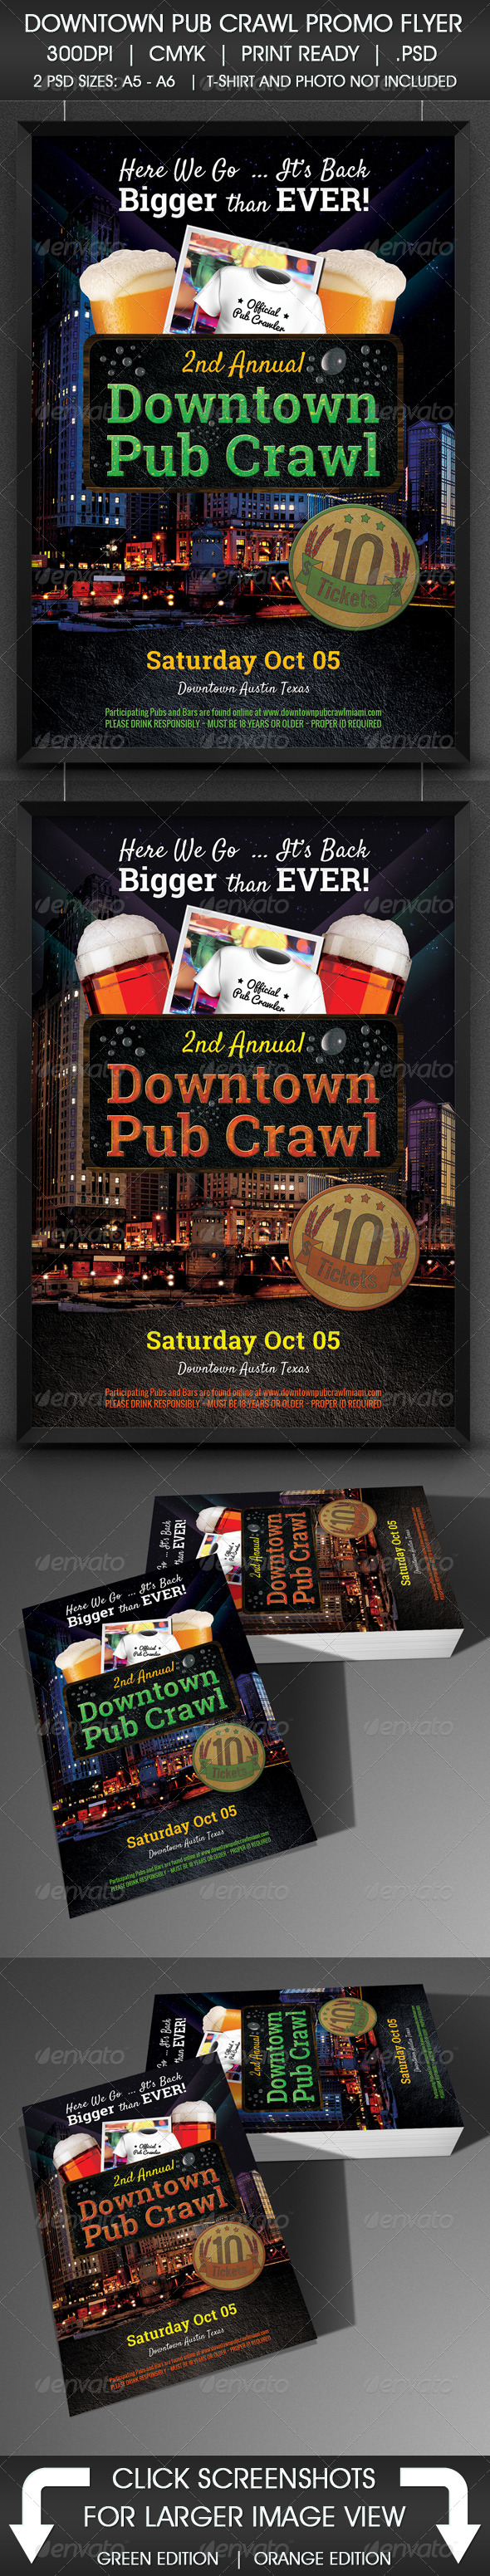 Downtown Pub Crawl Promo Flyer - Events Flyers